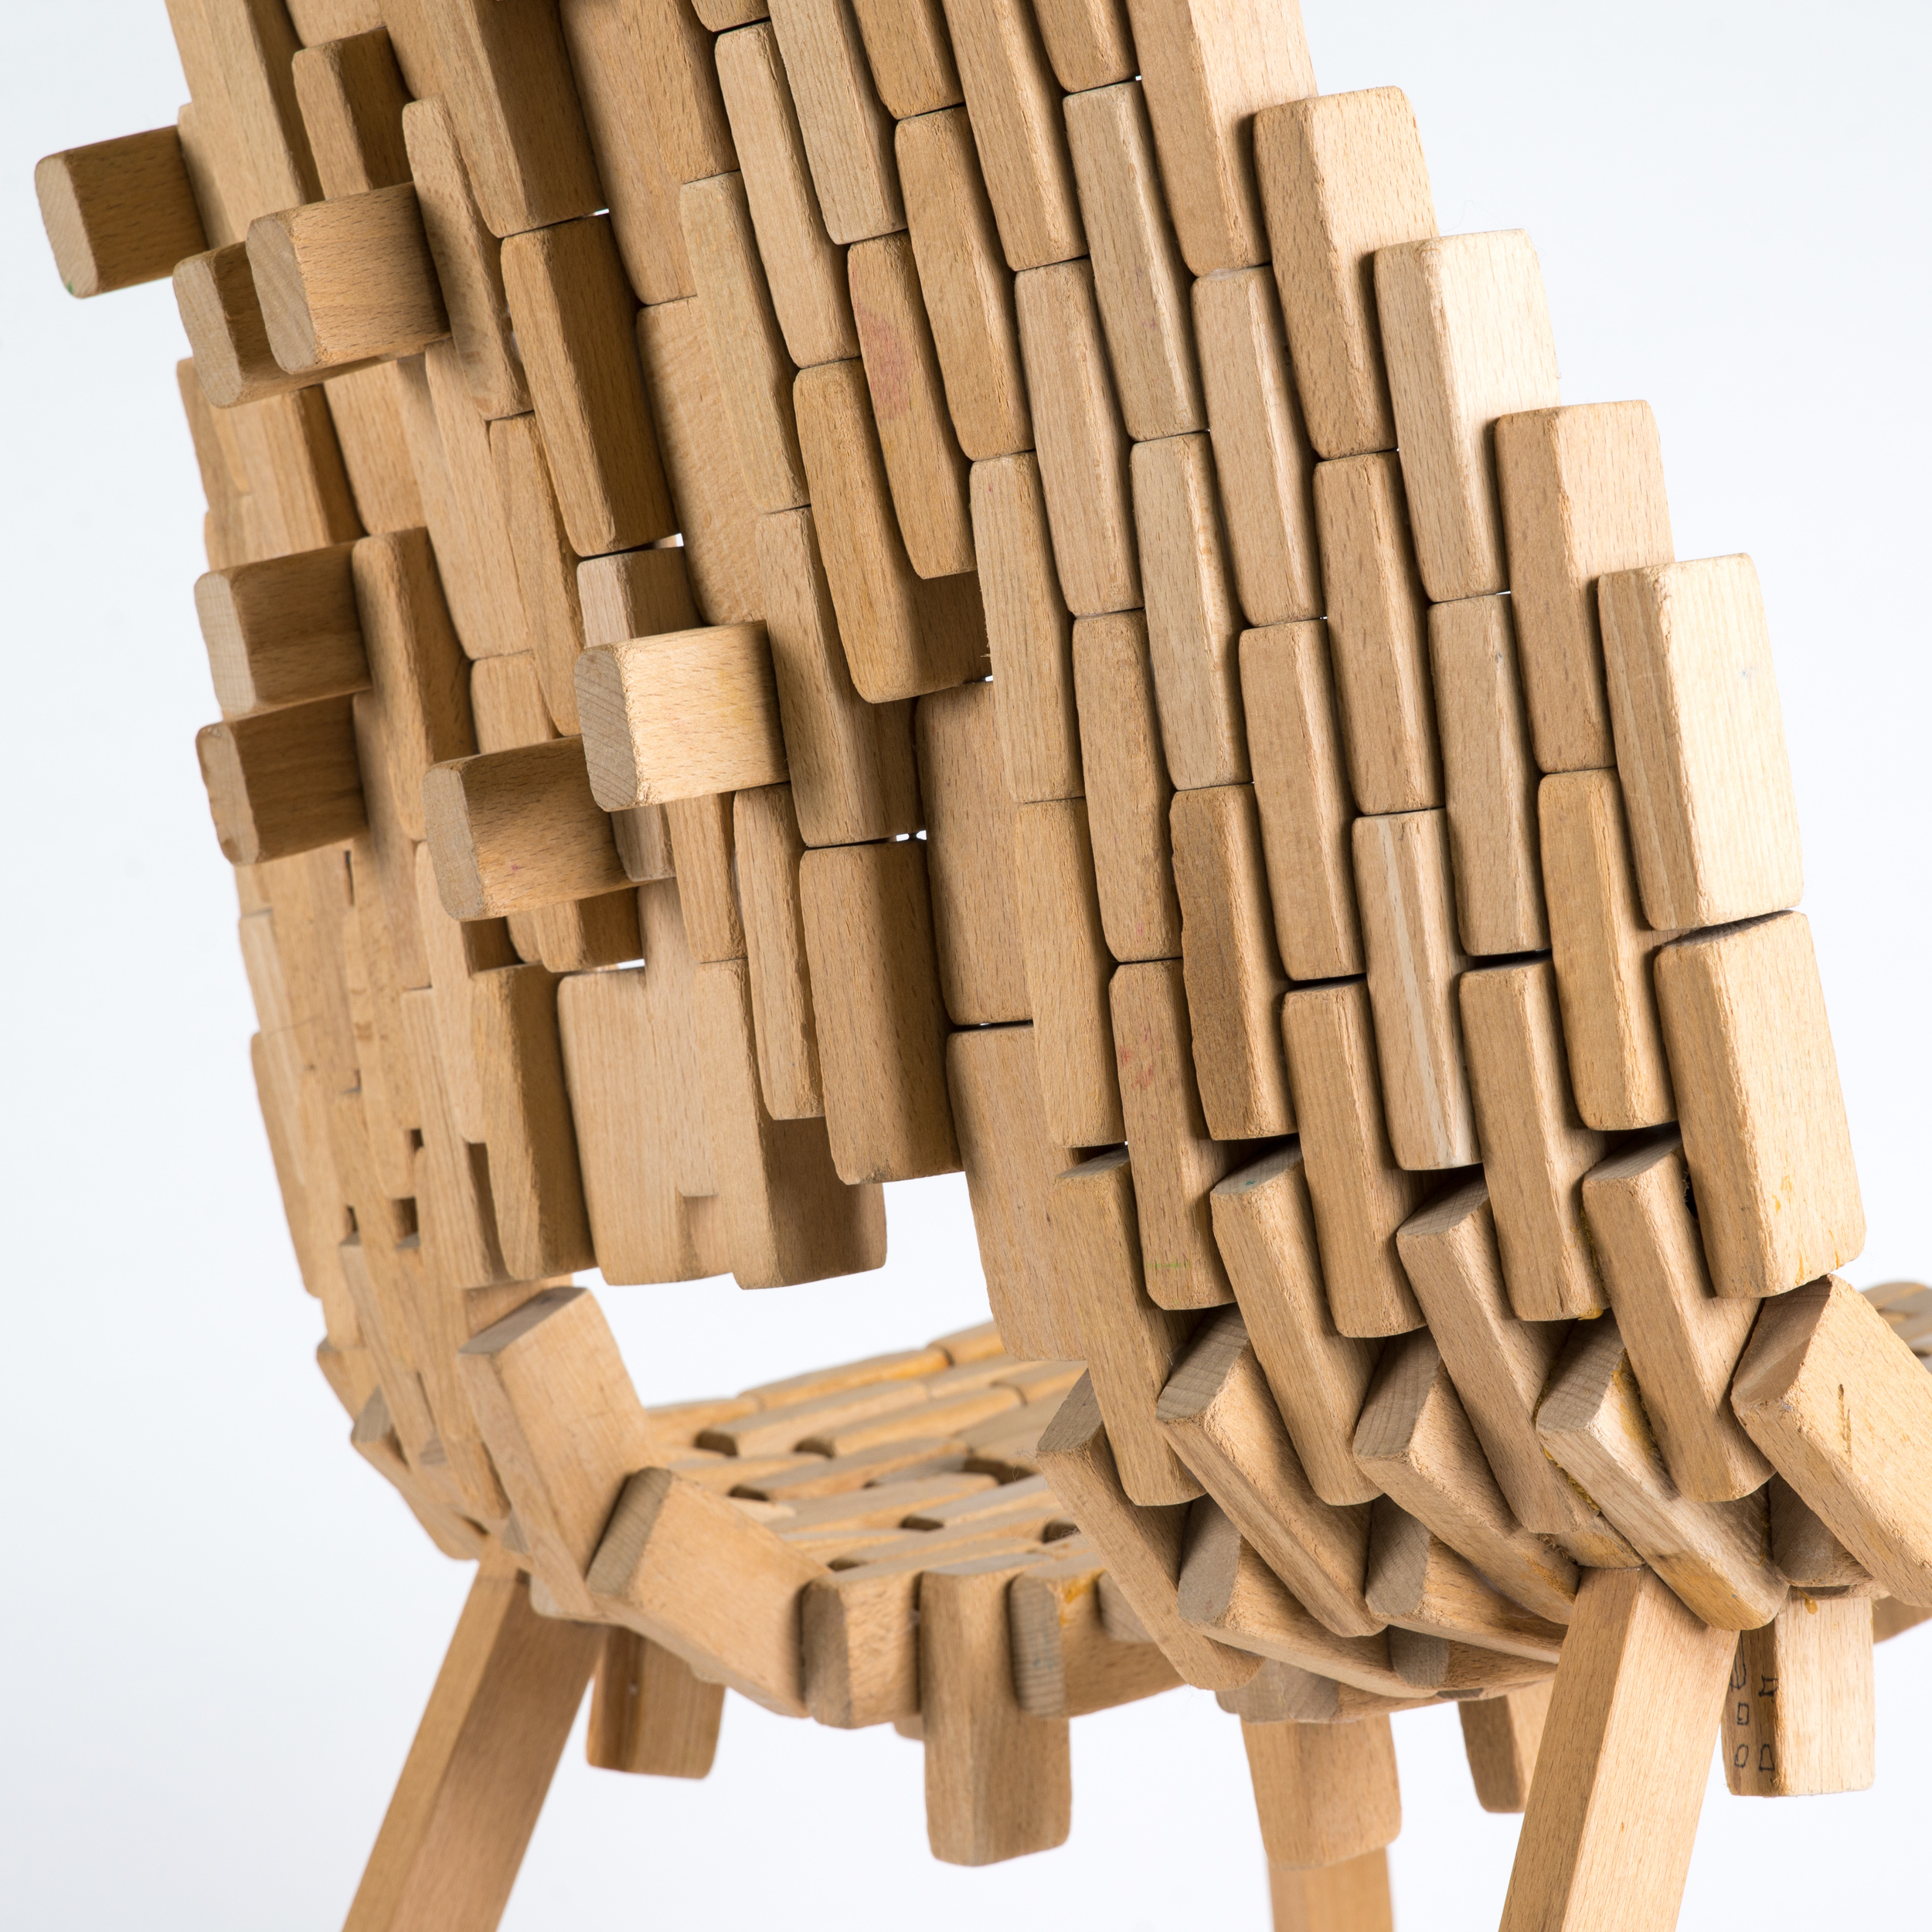 Bricks-chair-06.jpg